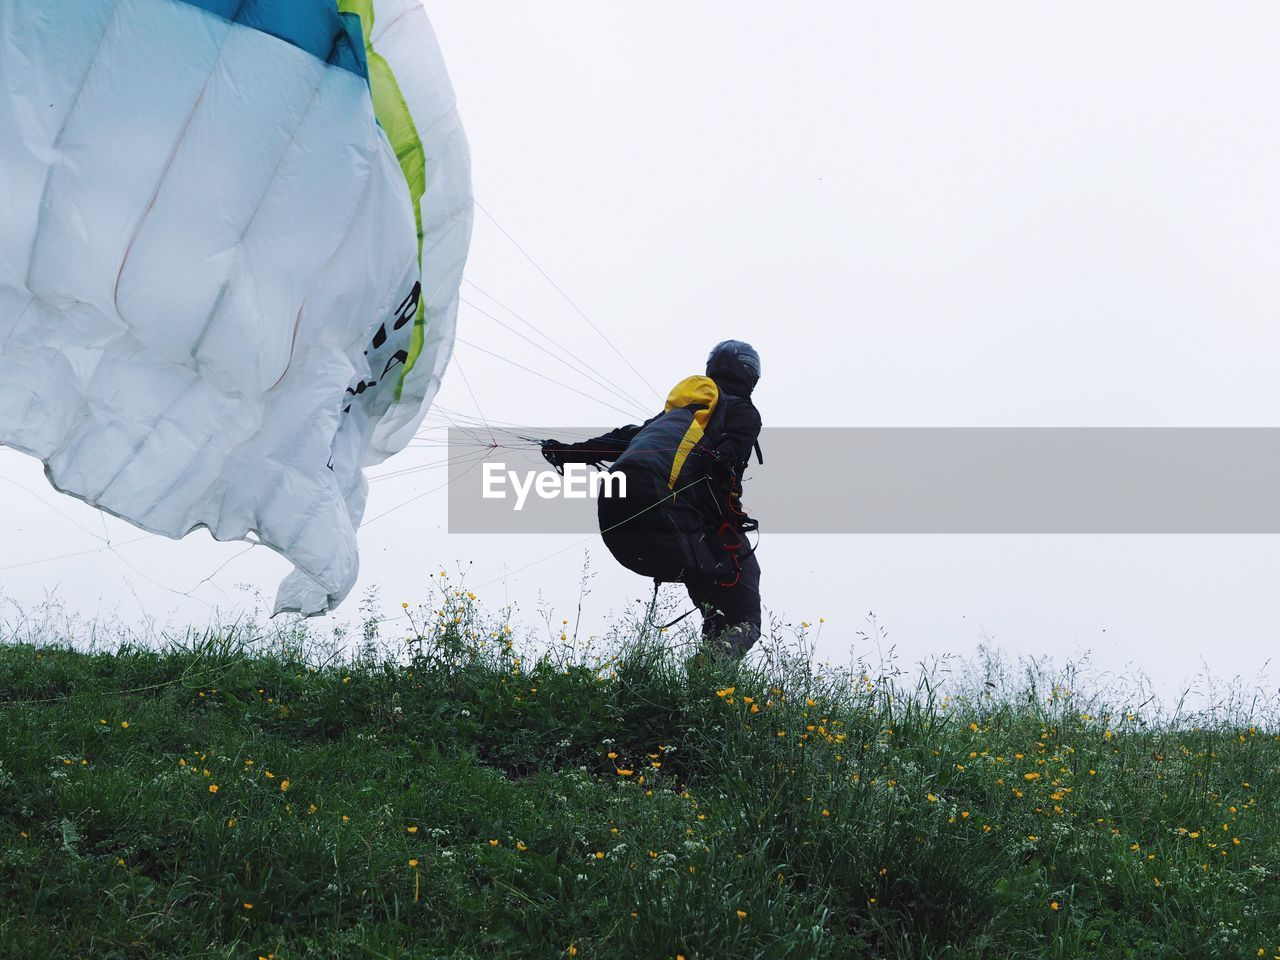 Woman Paragliding On Field Against Sky